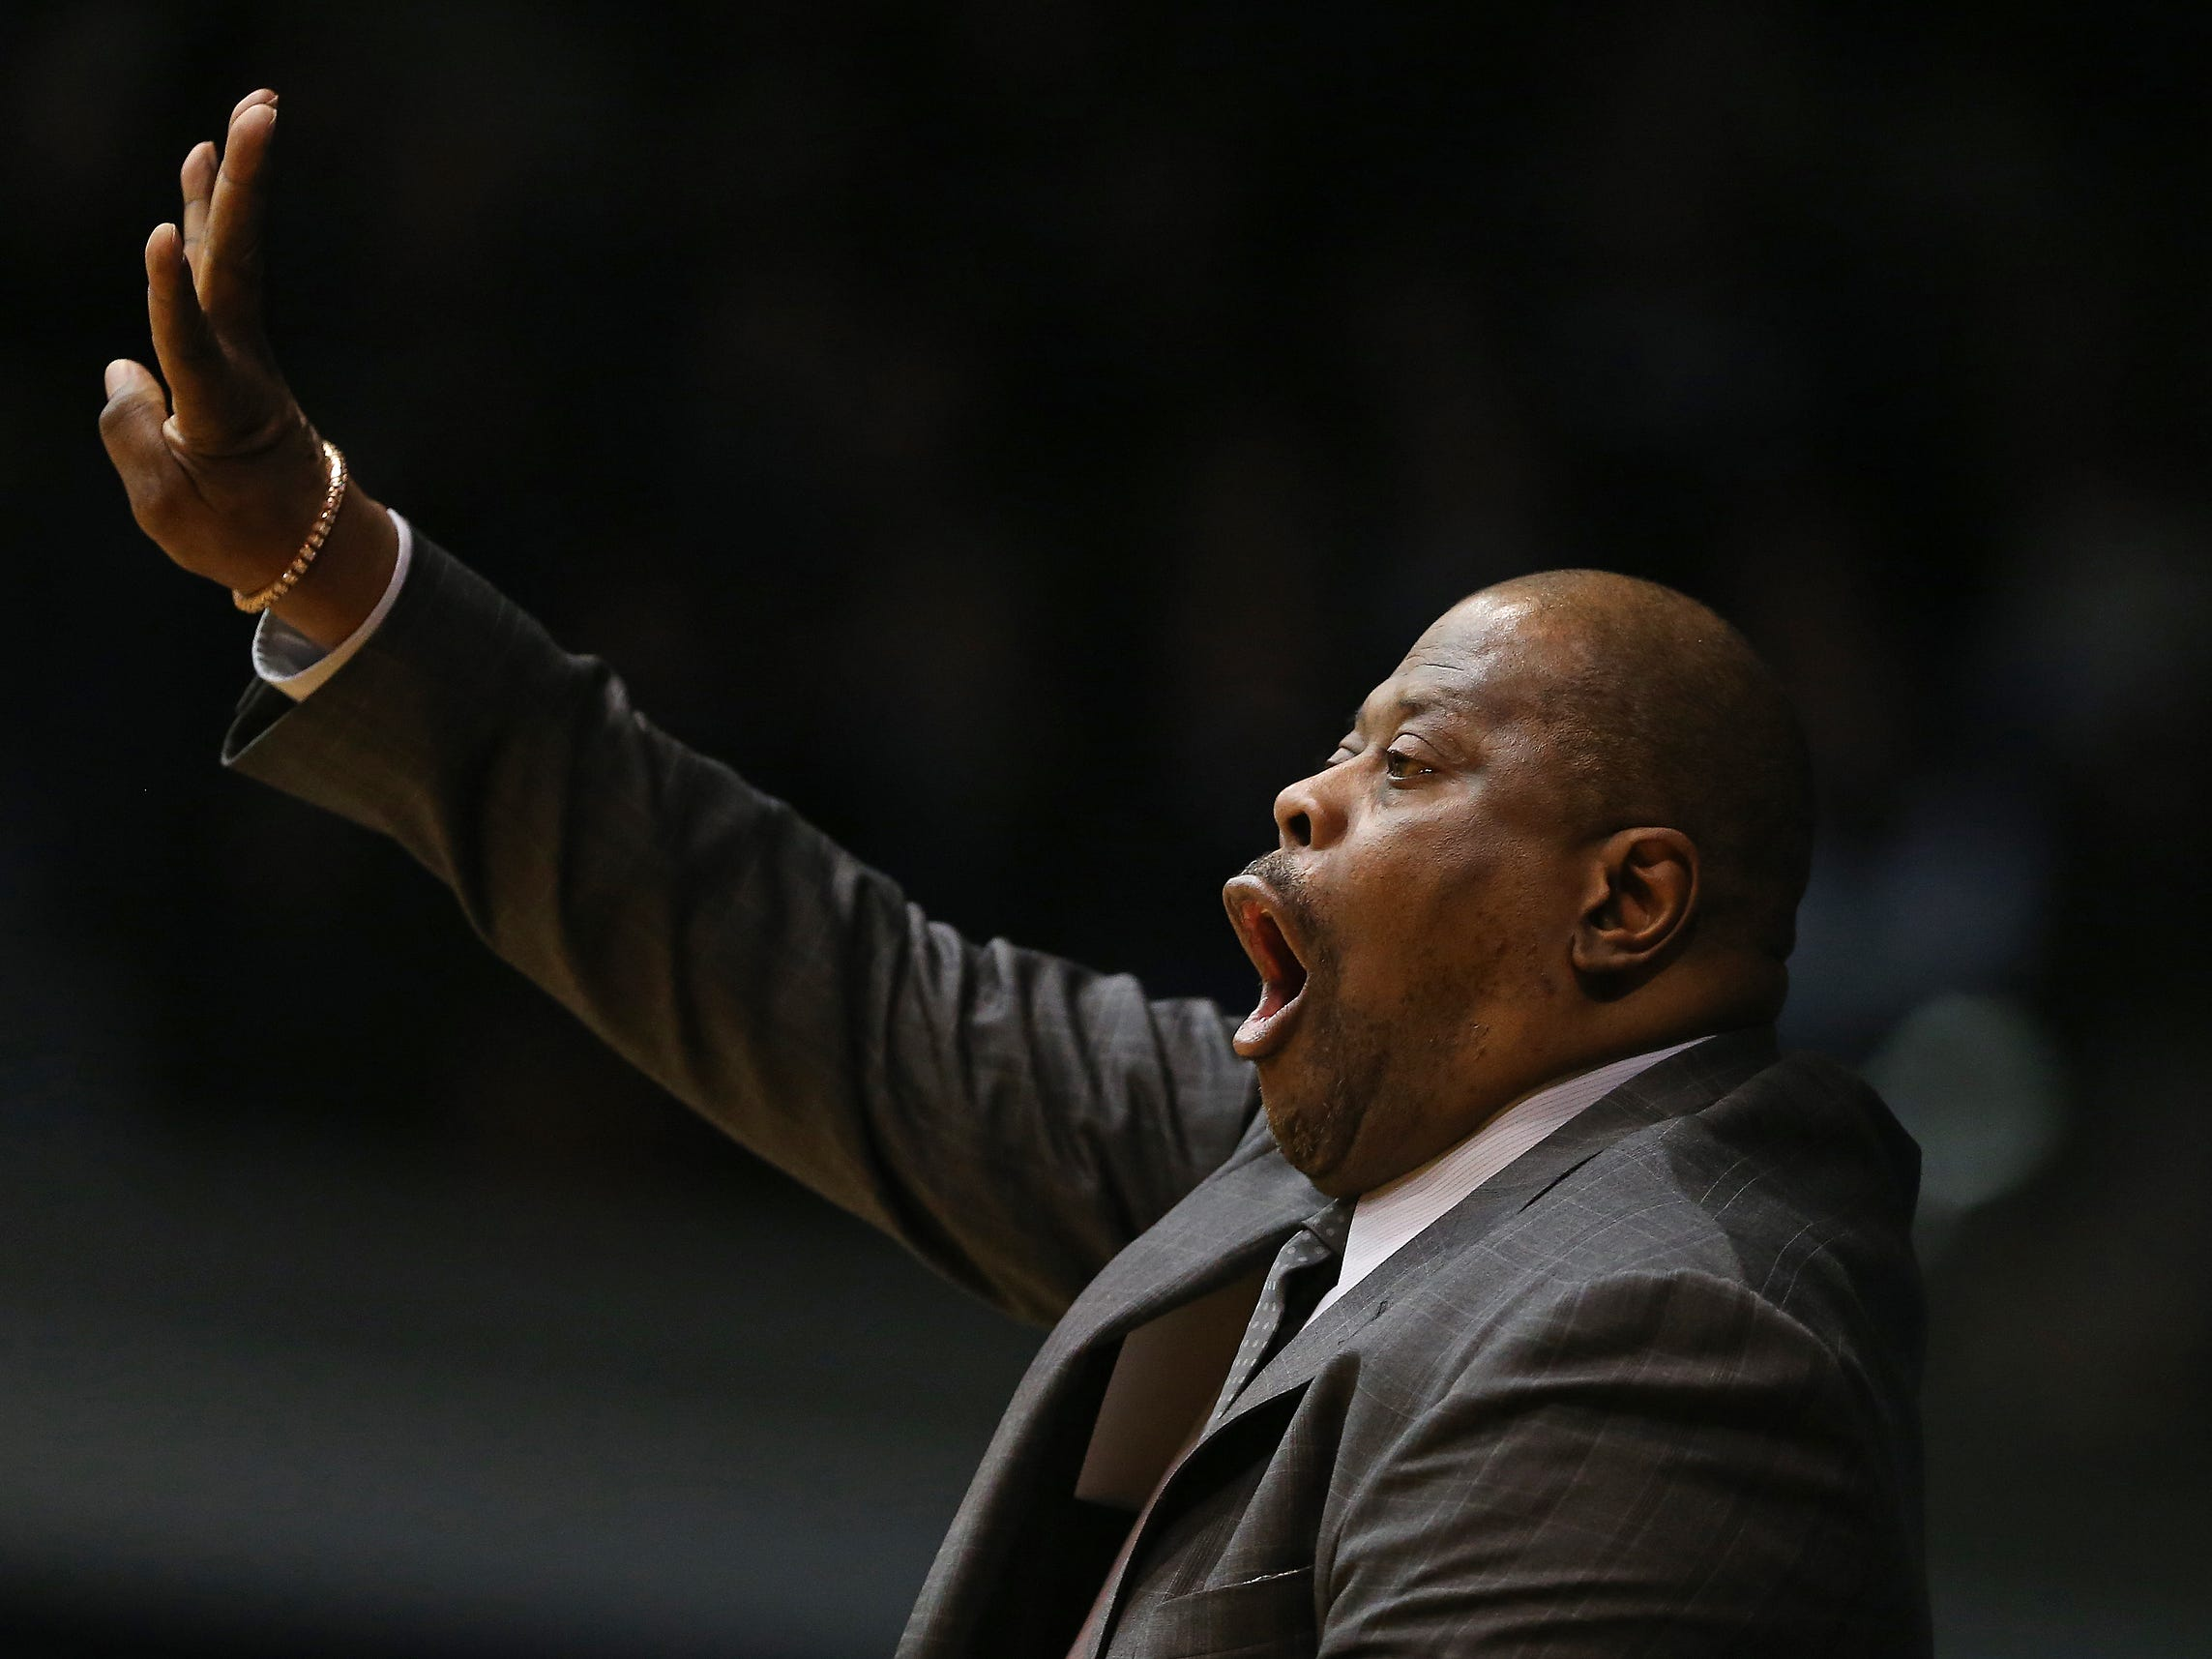 Georgetown Hoyas head coach Patrick Ewing calls a play against the Butler Bulldogs during the first half of game action between Butler University and Georgetown University, at Hinkle Fieldhouse in Indianapolis, Indiana on Wednesday, Jan. 2, 2019.